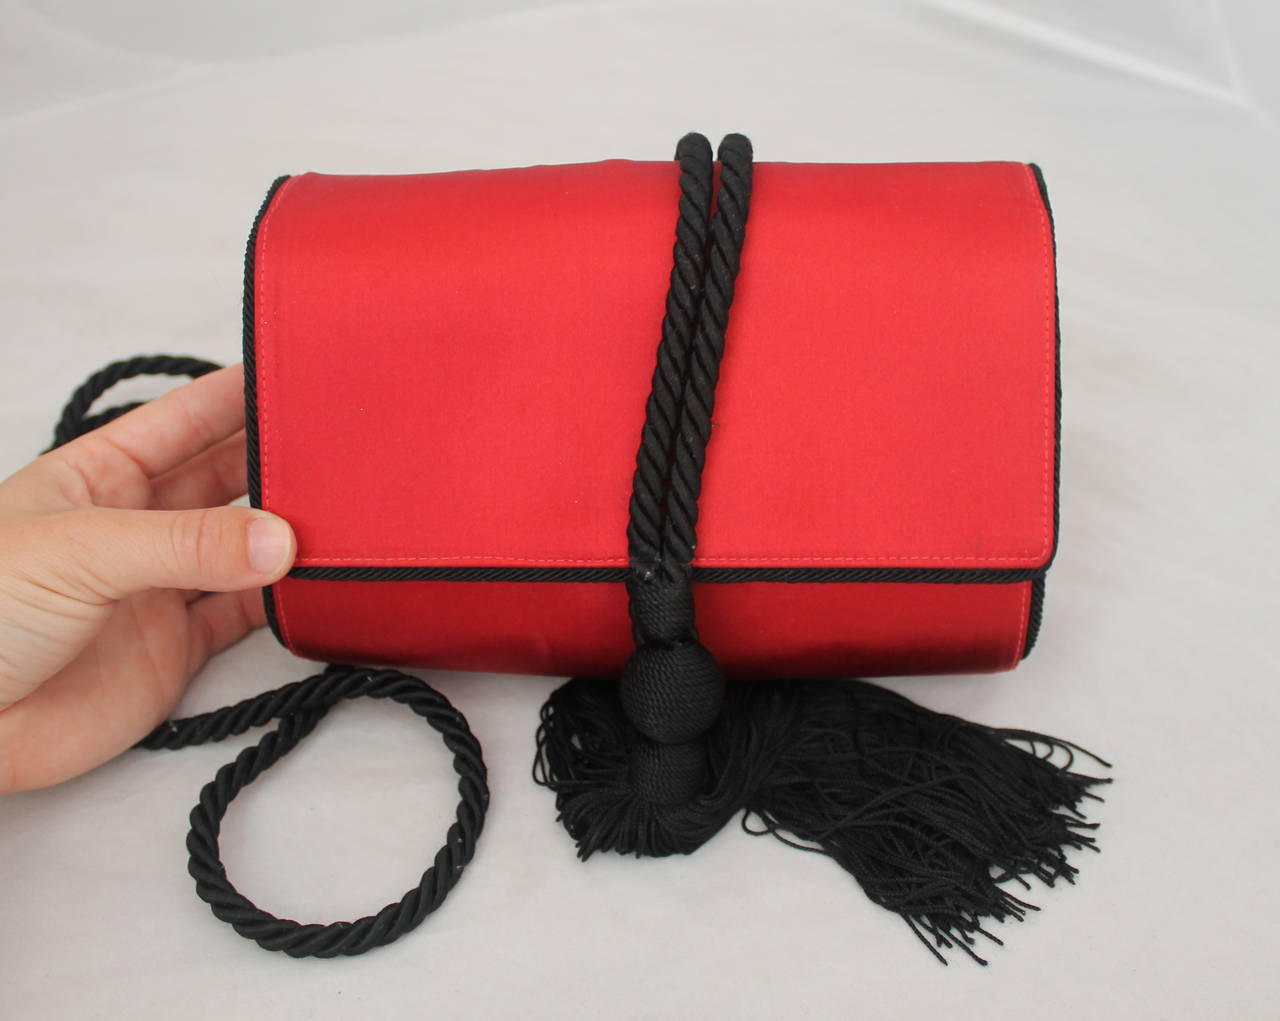 Vintage Salvatore Ferragamo Red and Black Satin Bag with Rope Strap 2